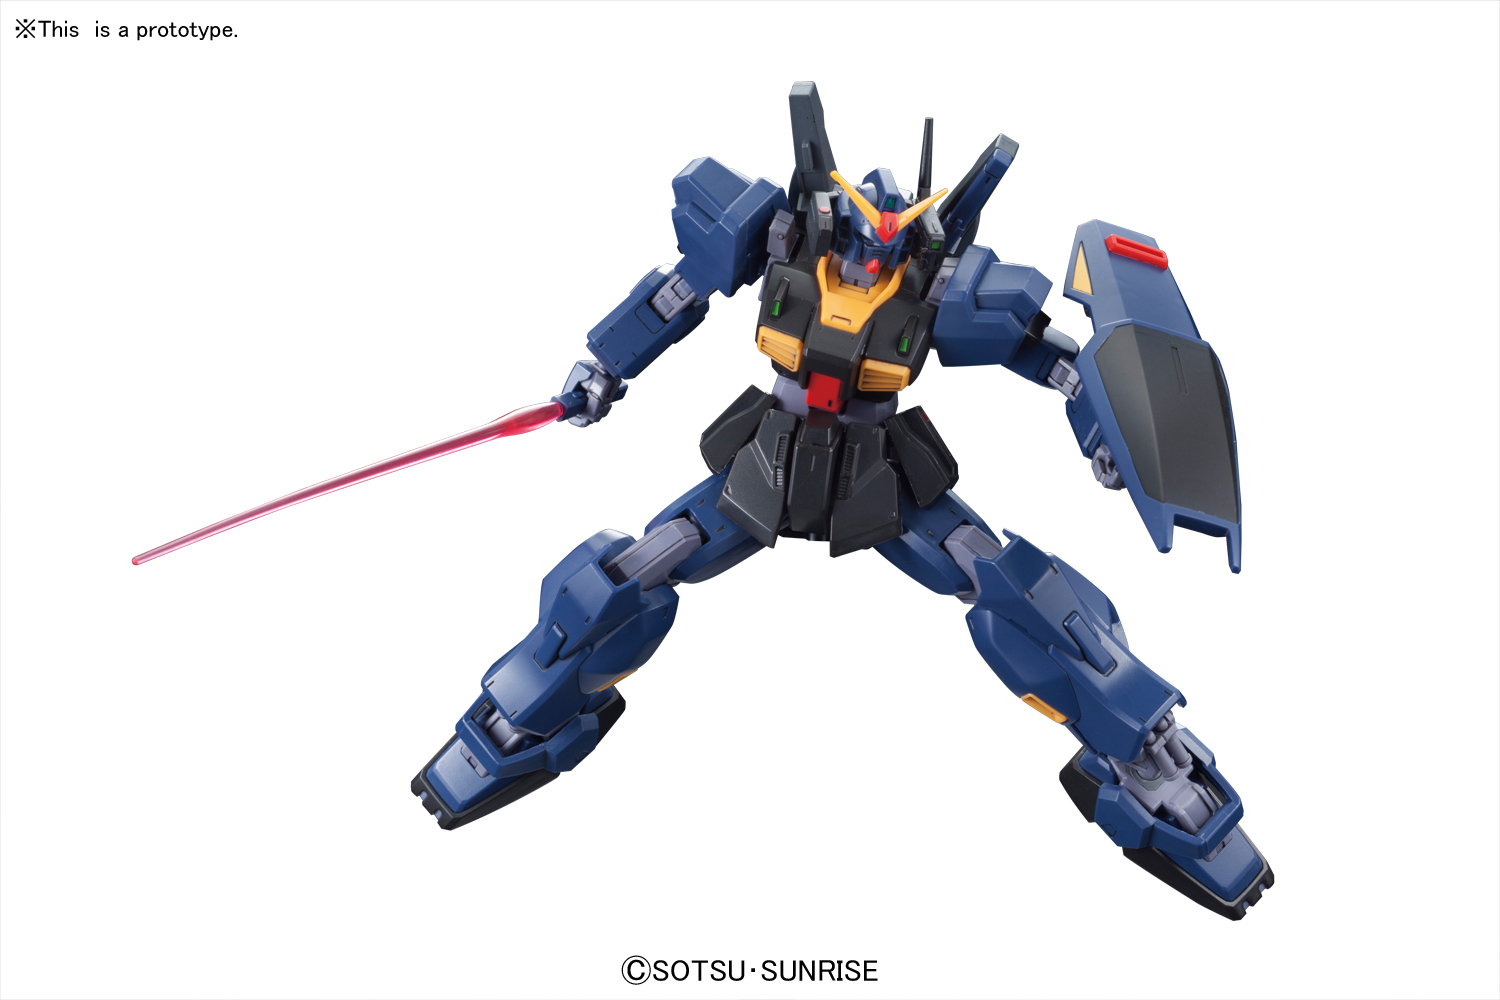 New High-Grade Gundam Models for Pre-order